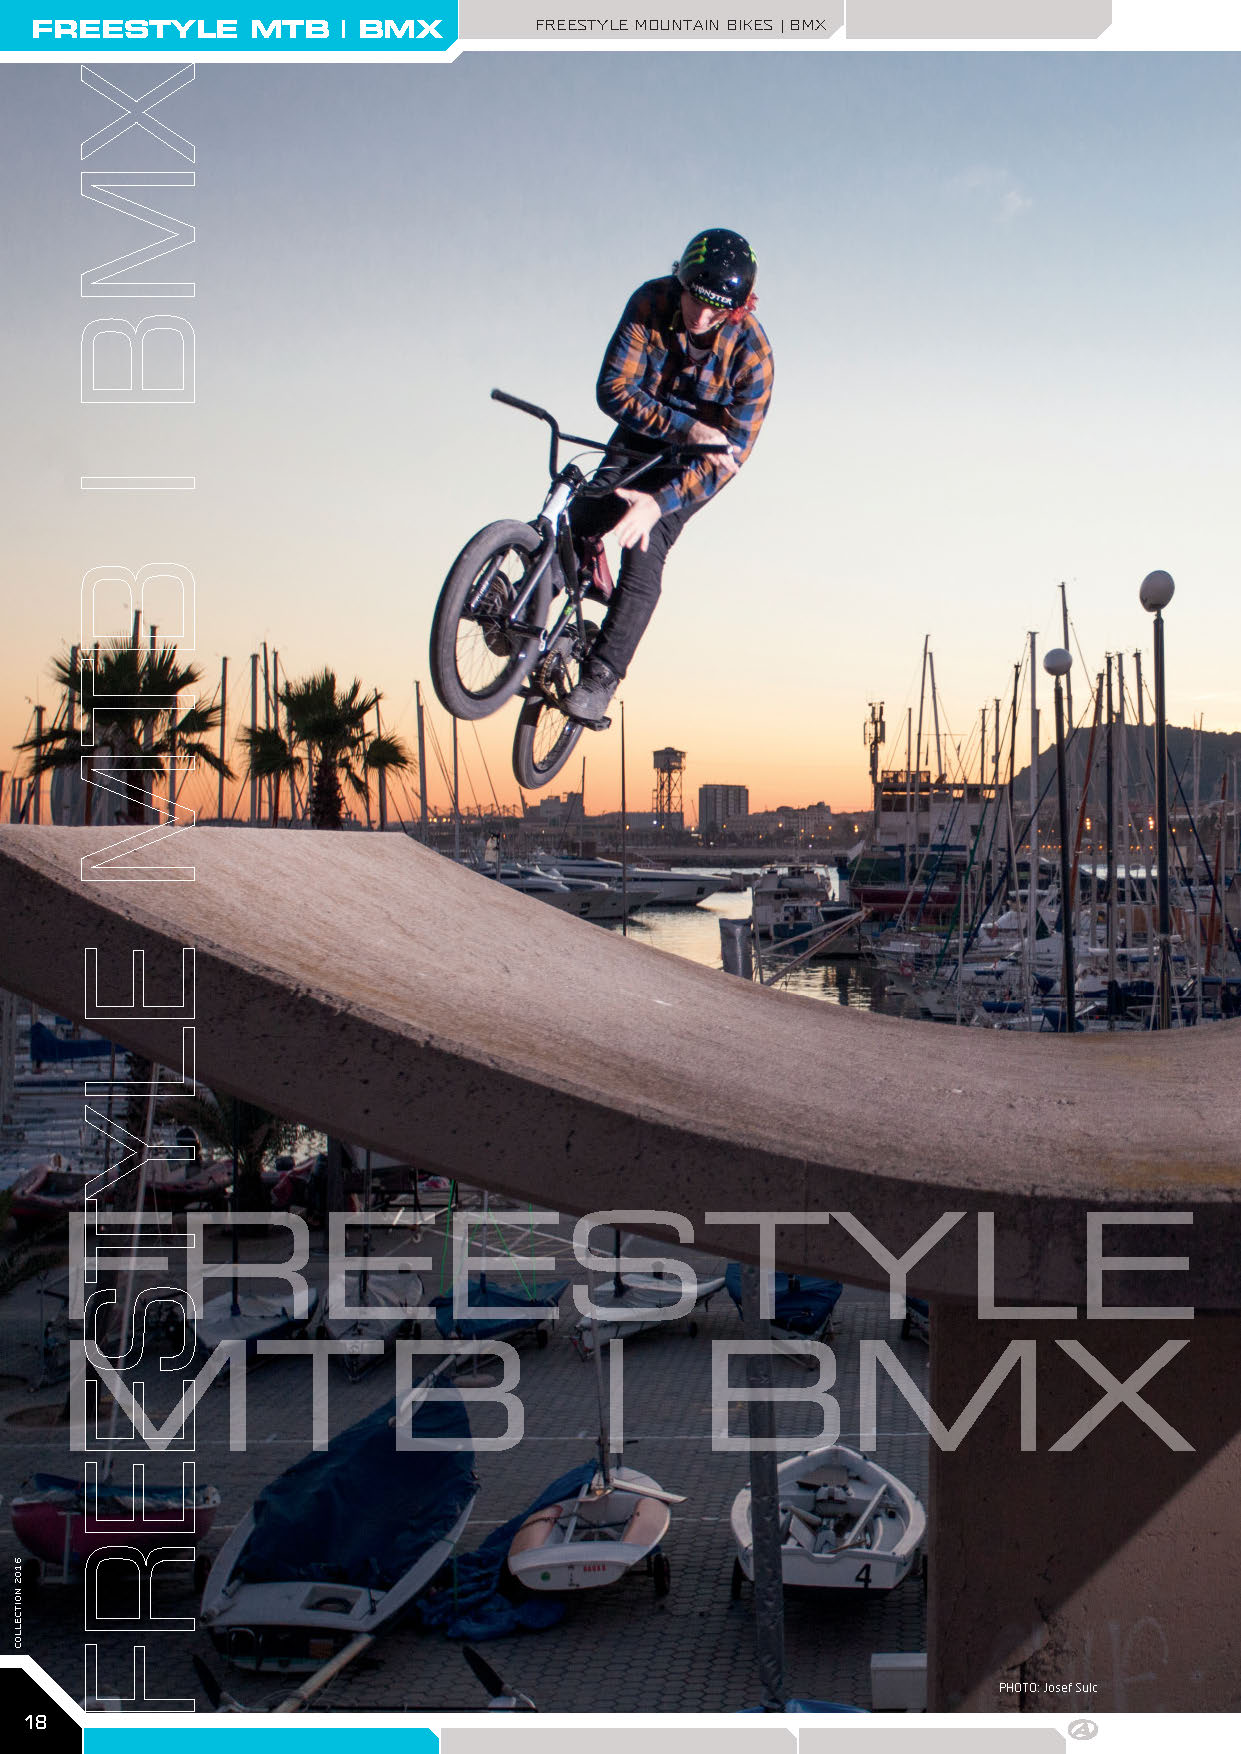 FREESTYLE MTB - freestyle mountain bikes | BMX